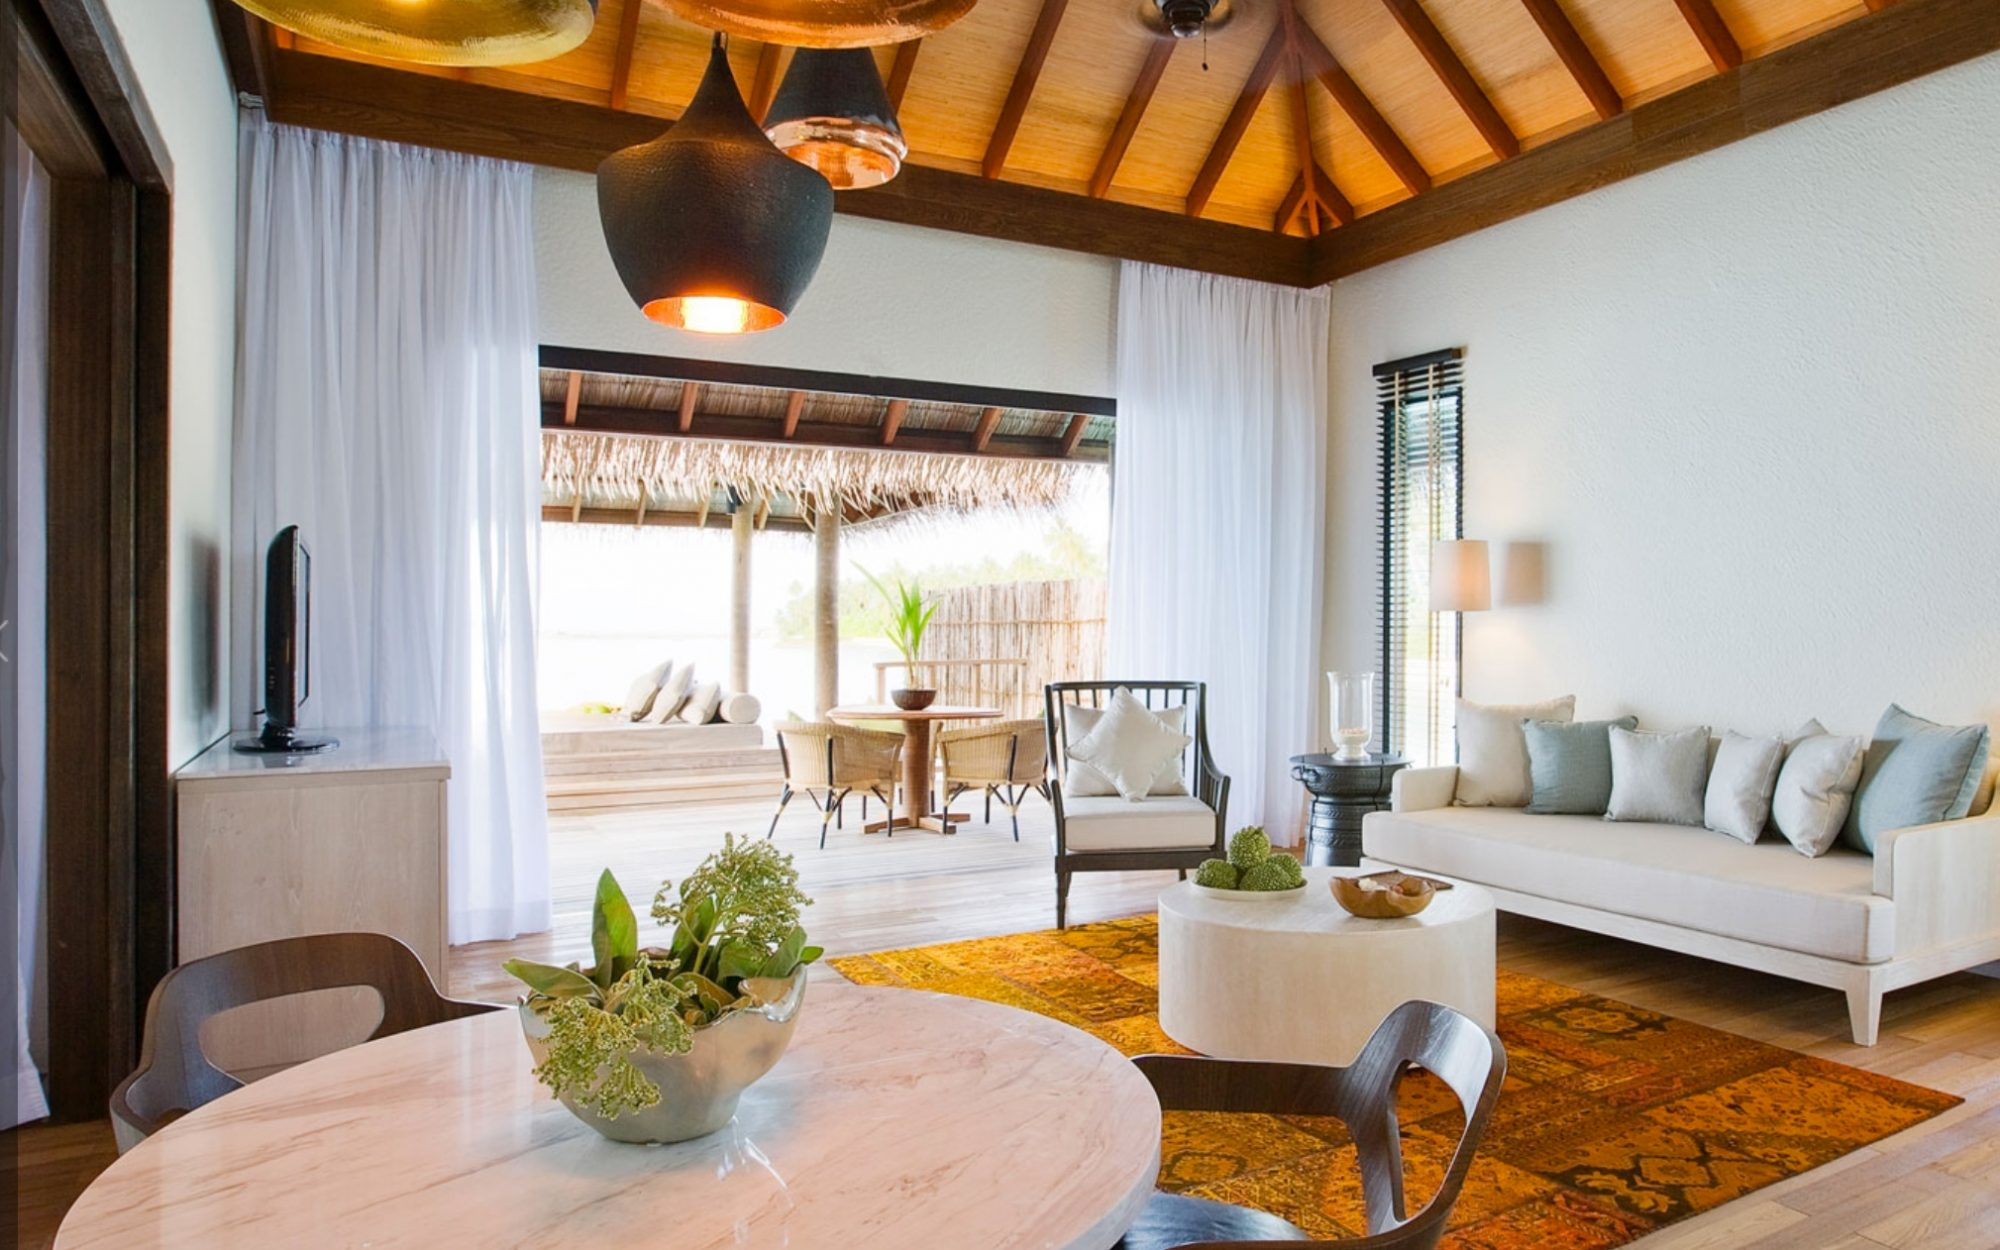 It List: The Best New Hotels 2015: A-List Escape: Maalifushi by Como, Maldives